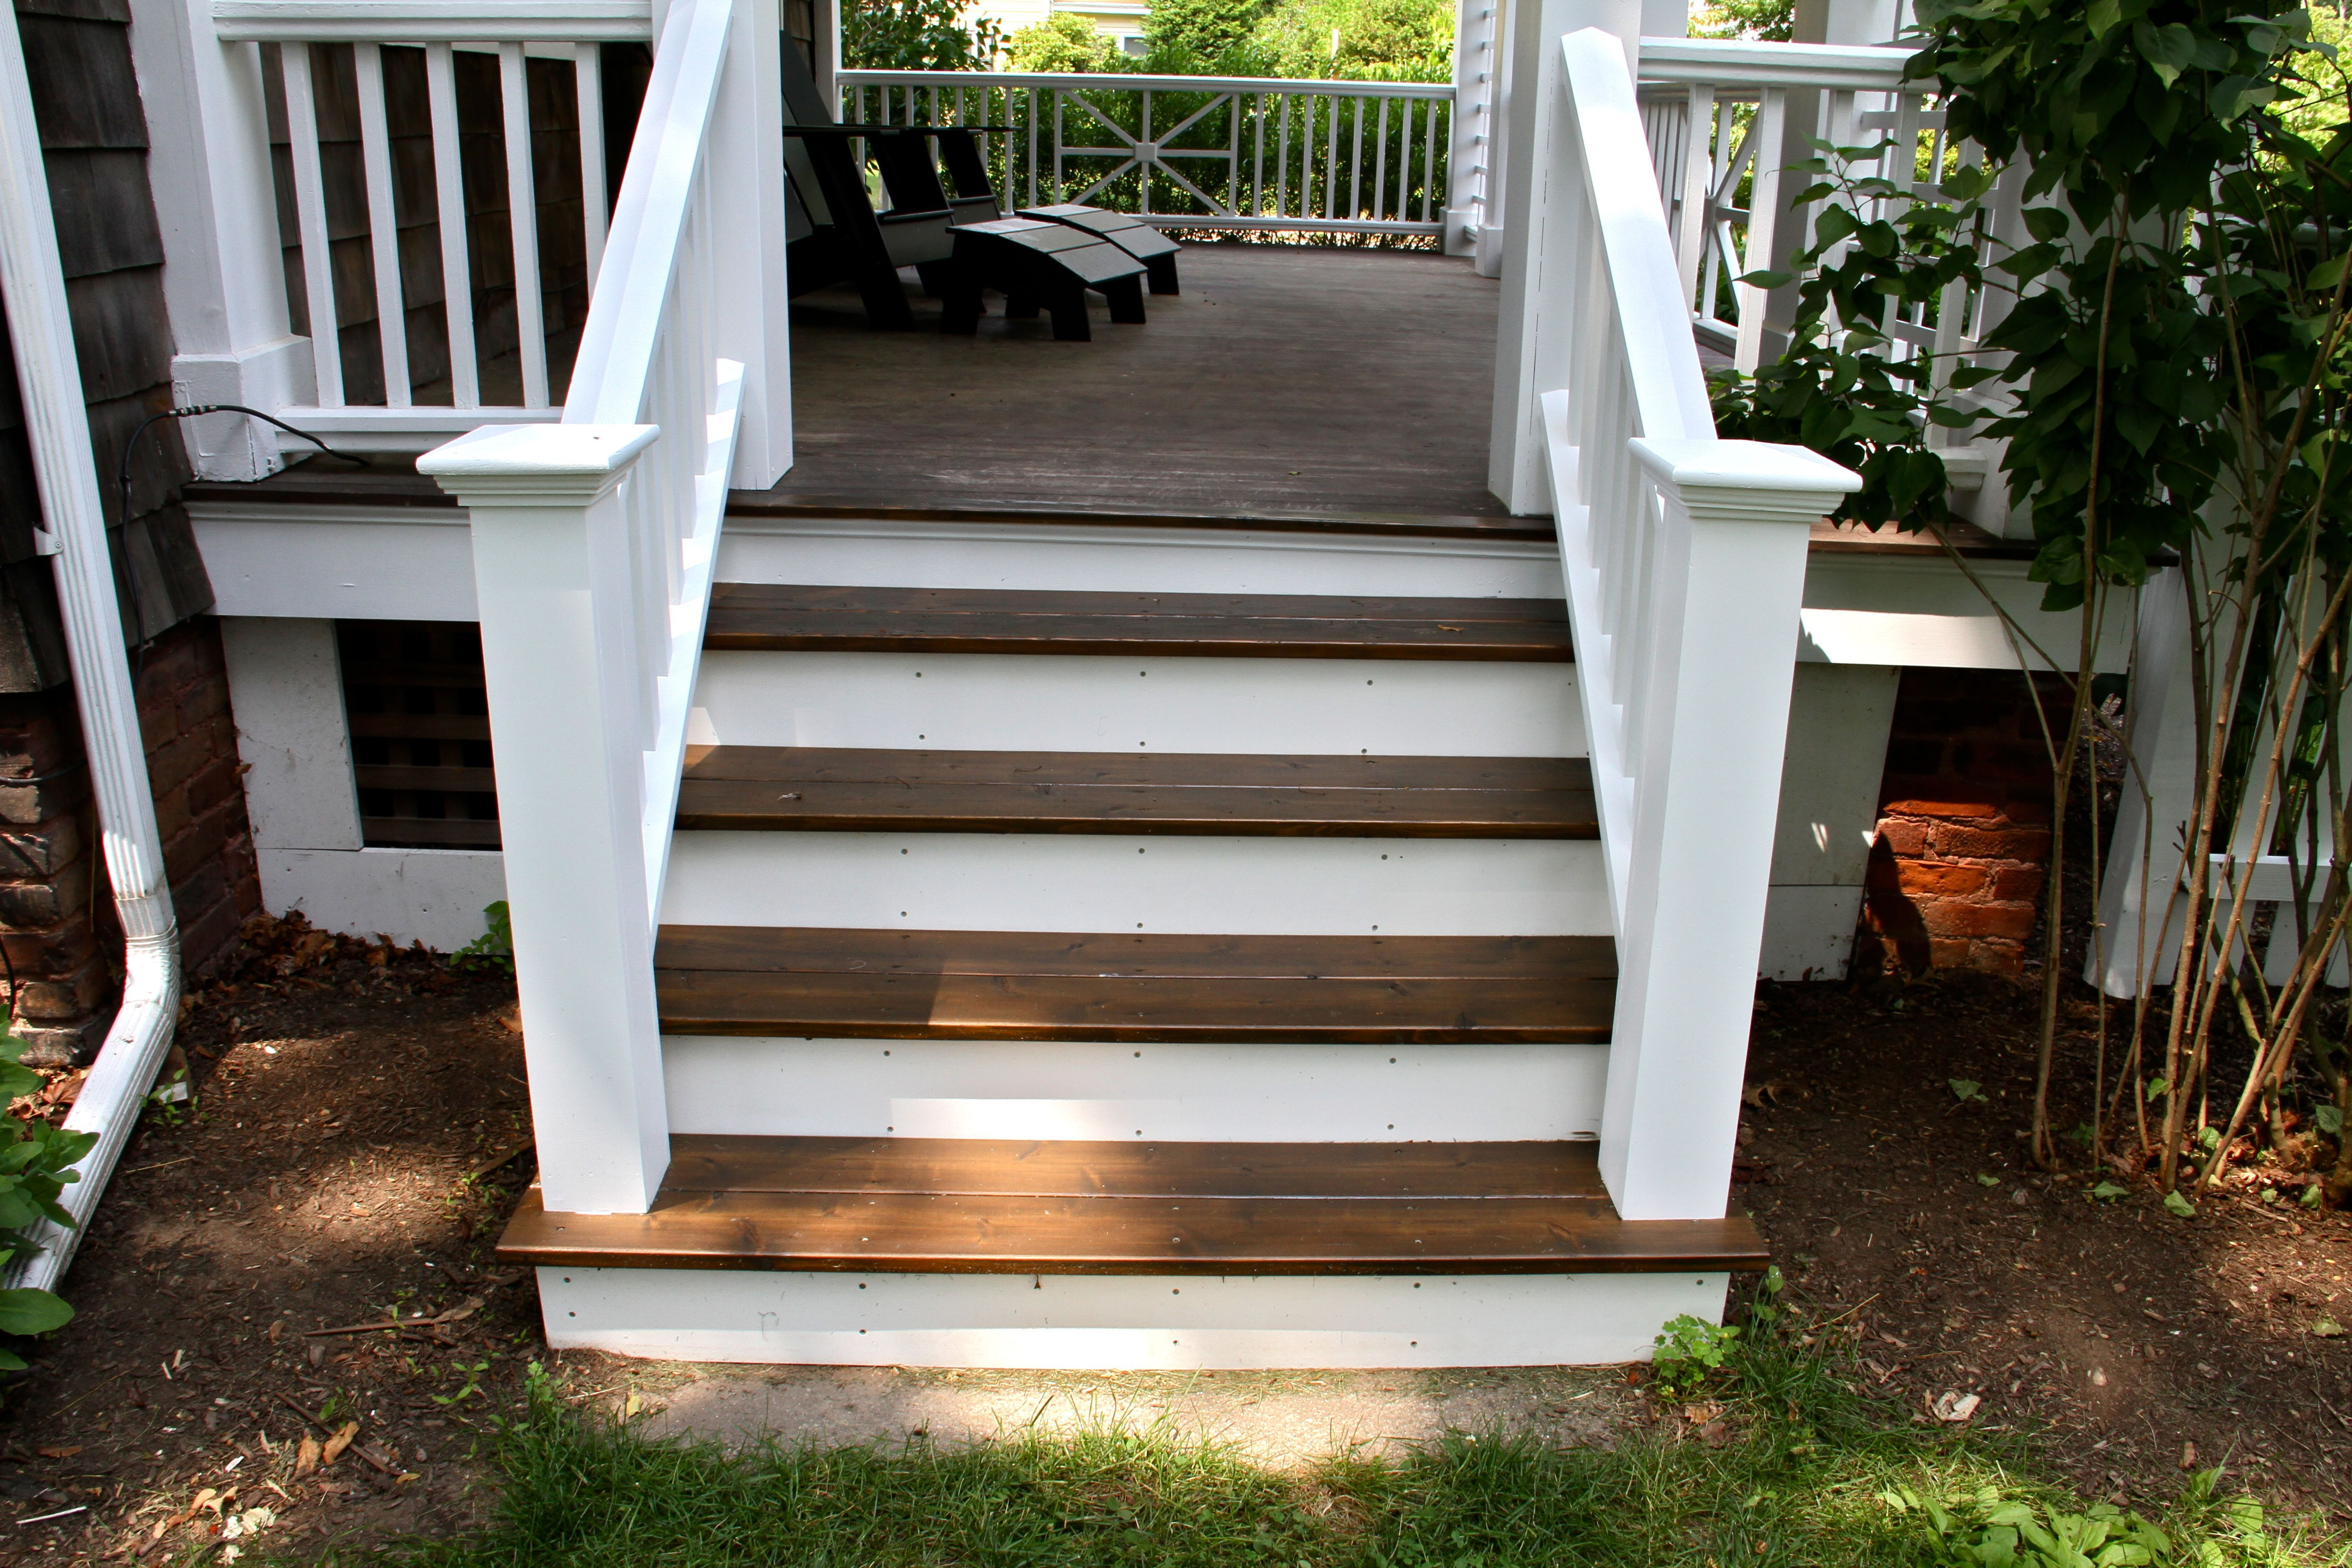 Best After The Porch Stairs Railings Painted To Match The 400 x 300